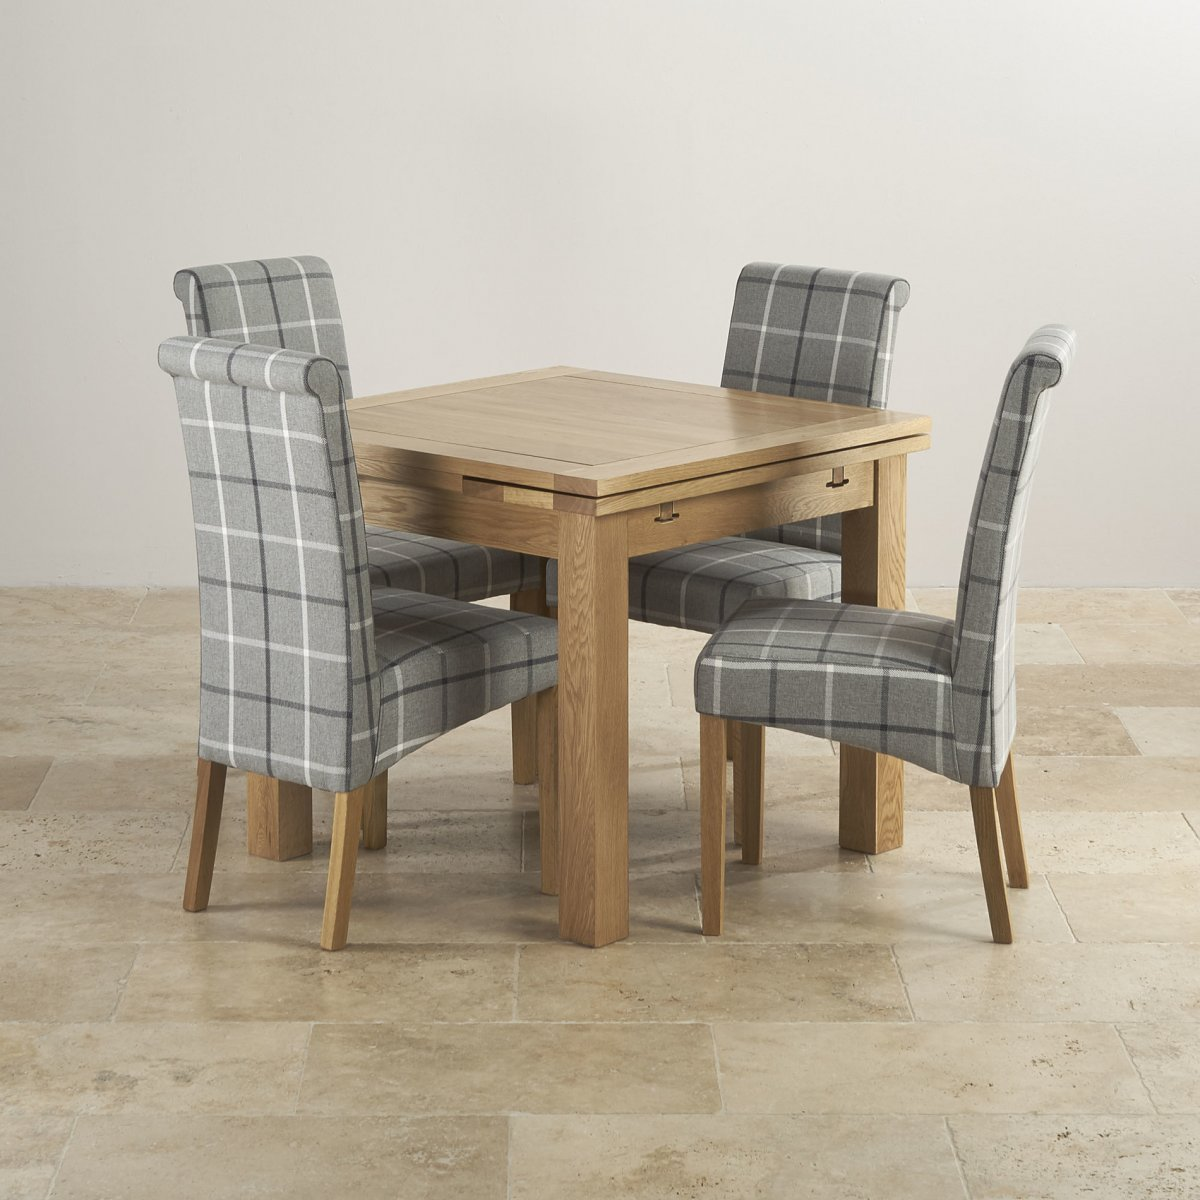 Small Dining Table For 4: Dorset Extending Table